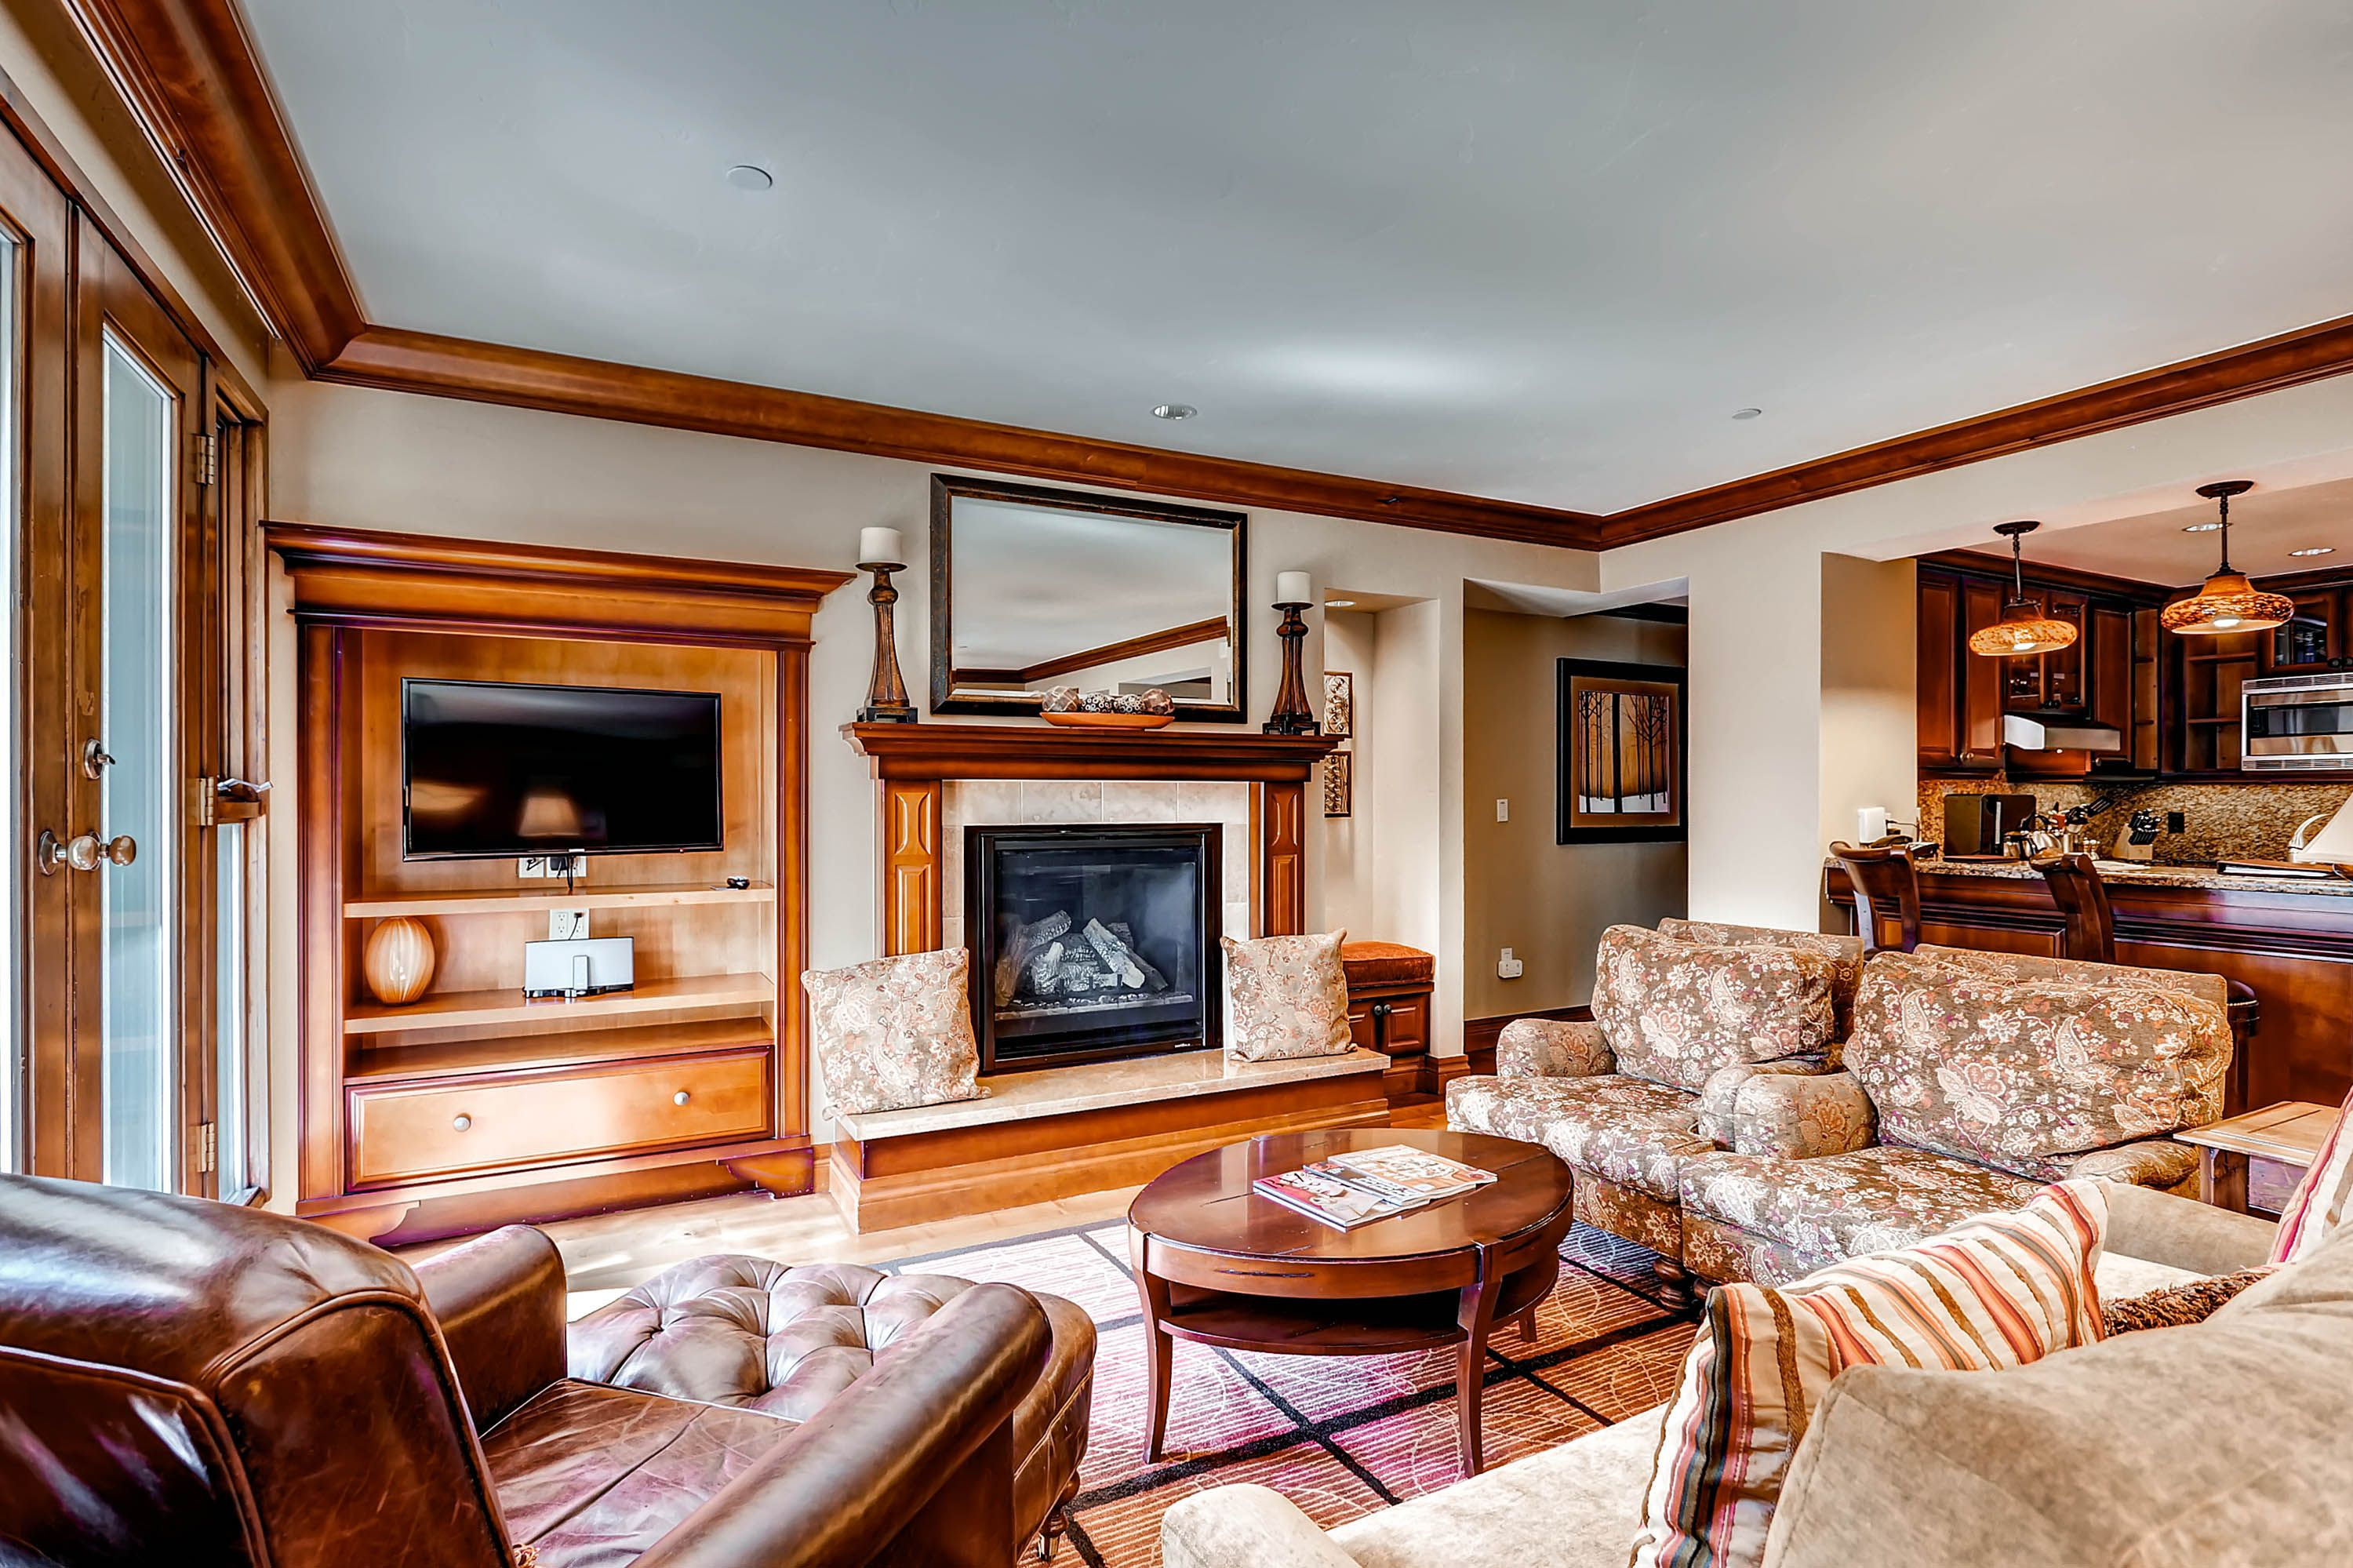 100 E Thomas Place # 3051 Beaver Creek, CO 81620